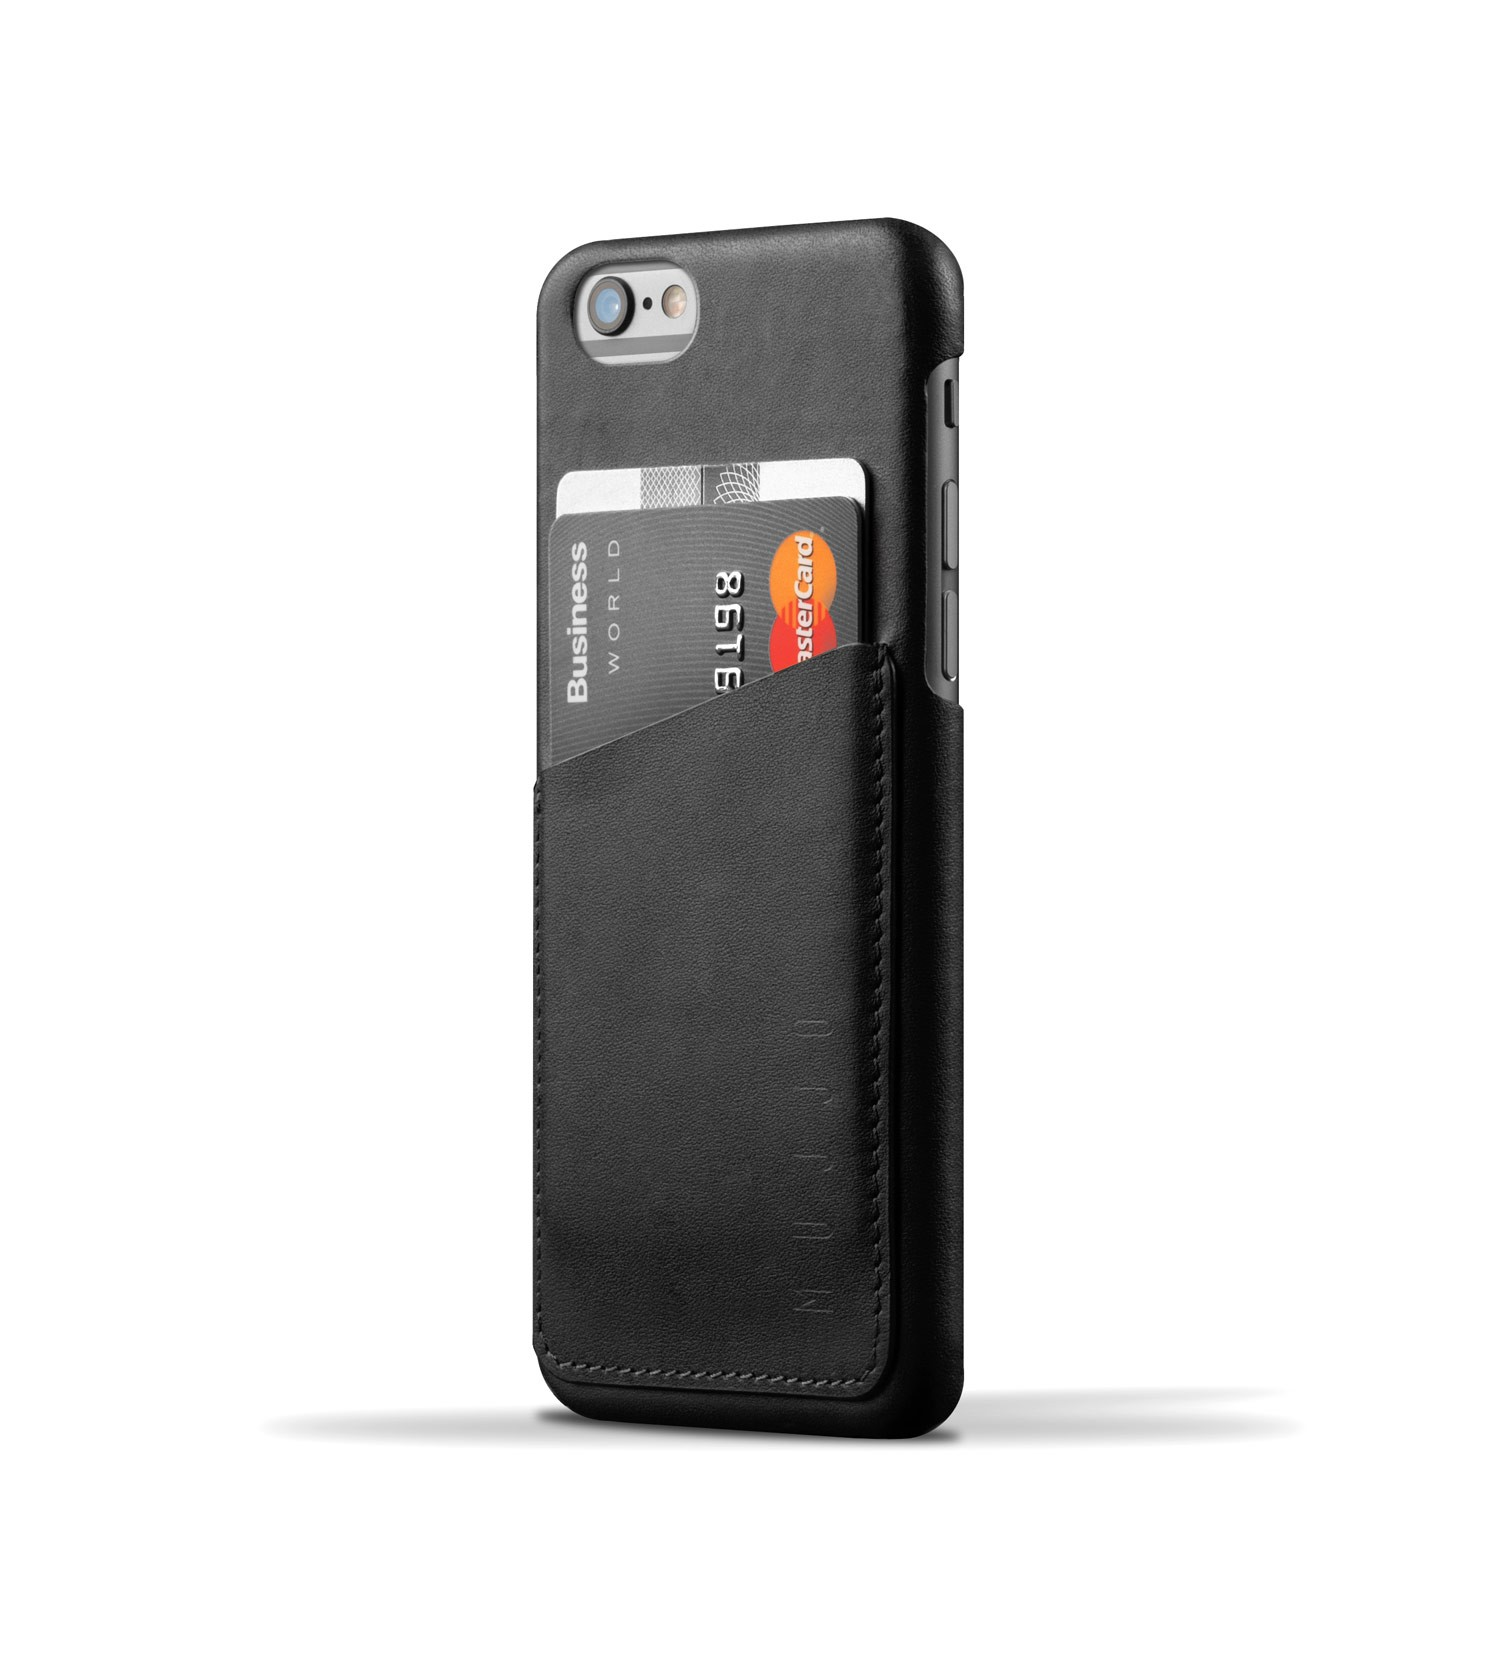 leather-wallet-case-for-iphone-6-black-001_1